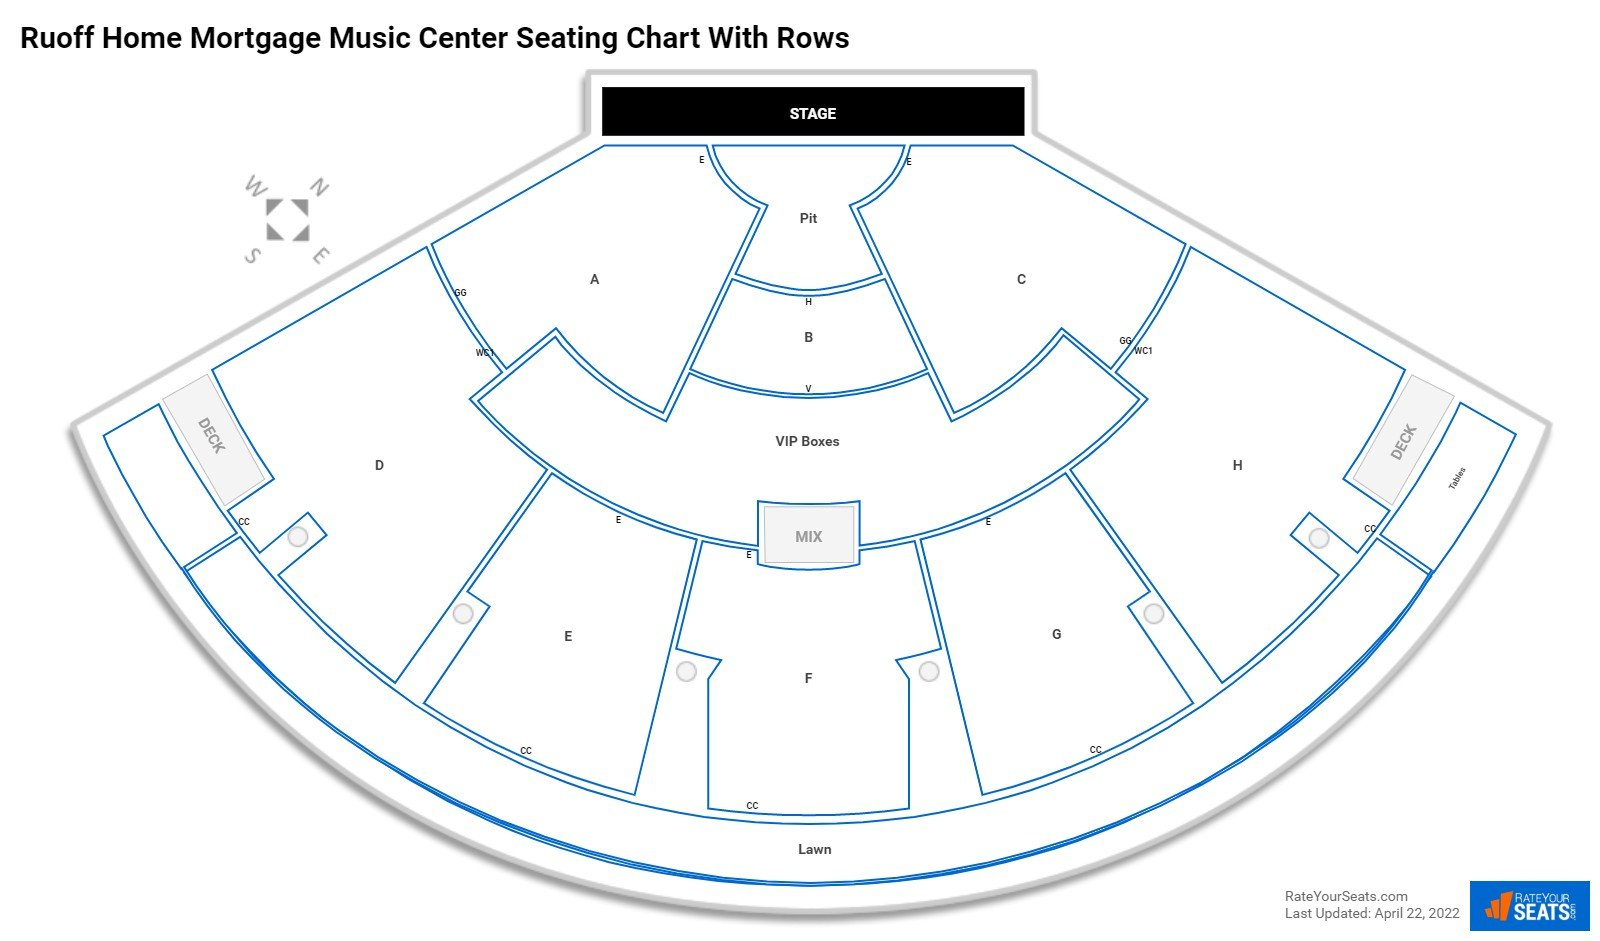 Ruoff Home Mortgage Music Center seating chart with rows